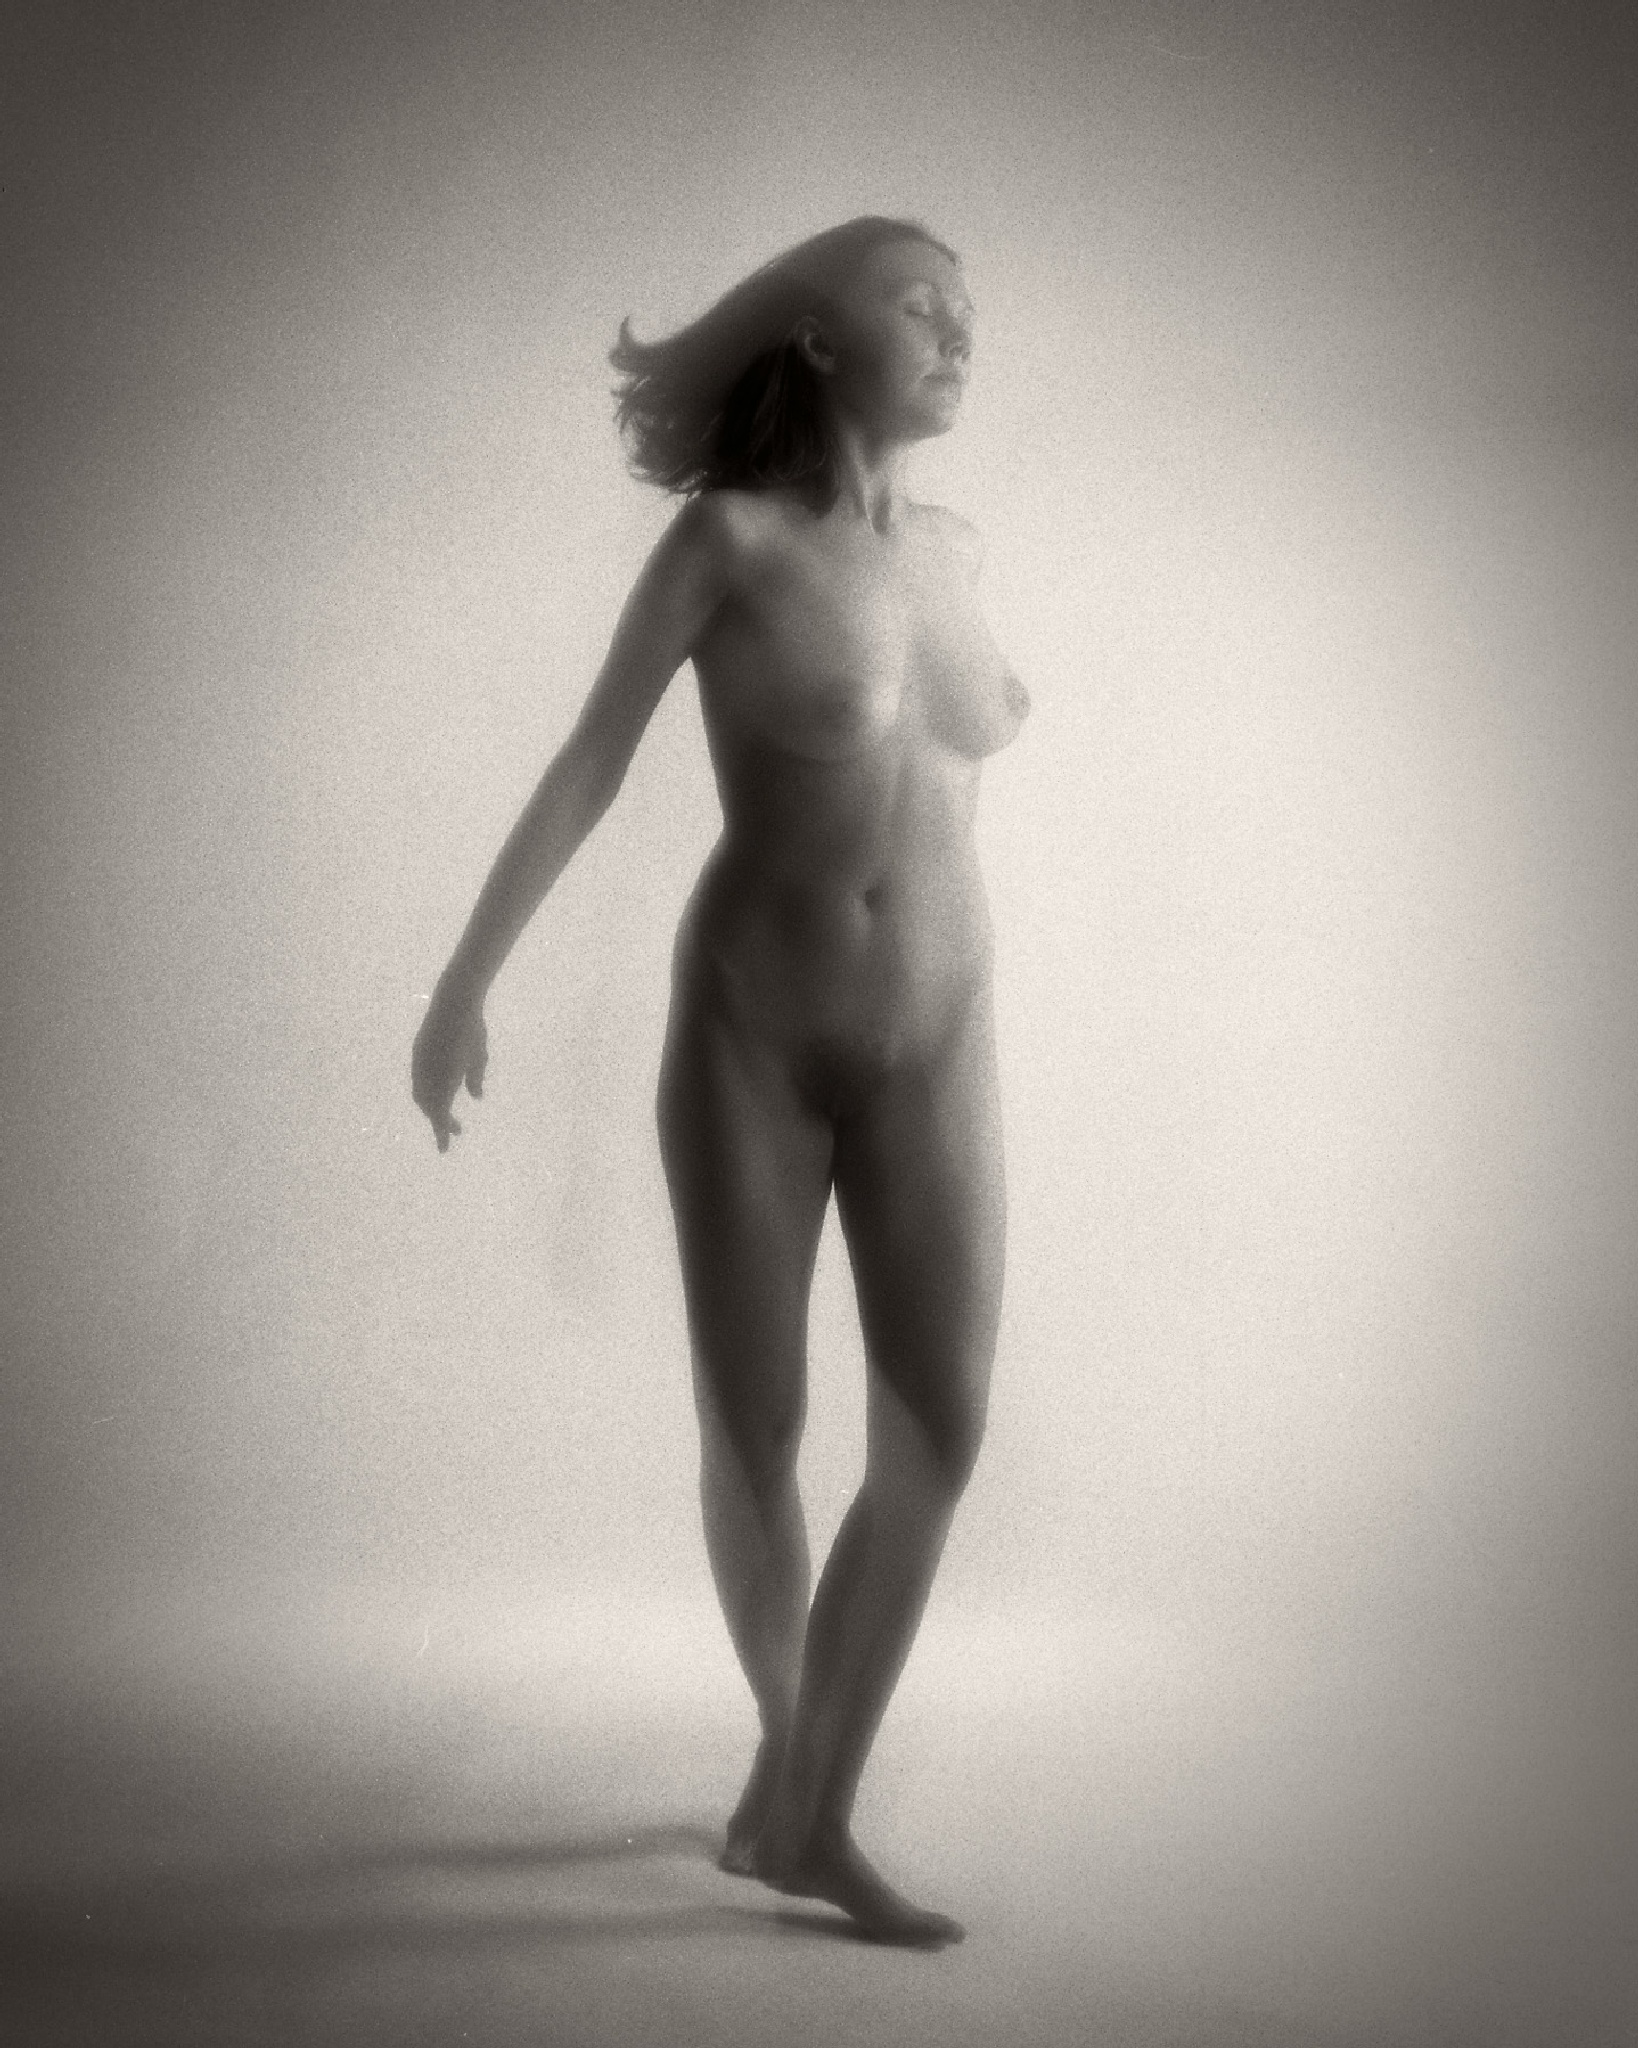 Nude in motion 2 by Pixforce